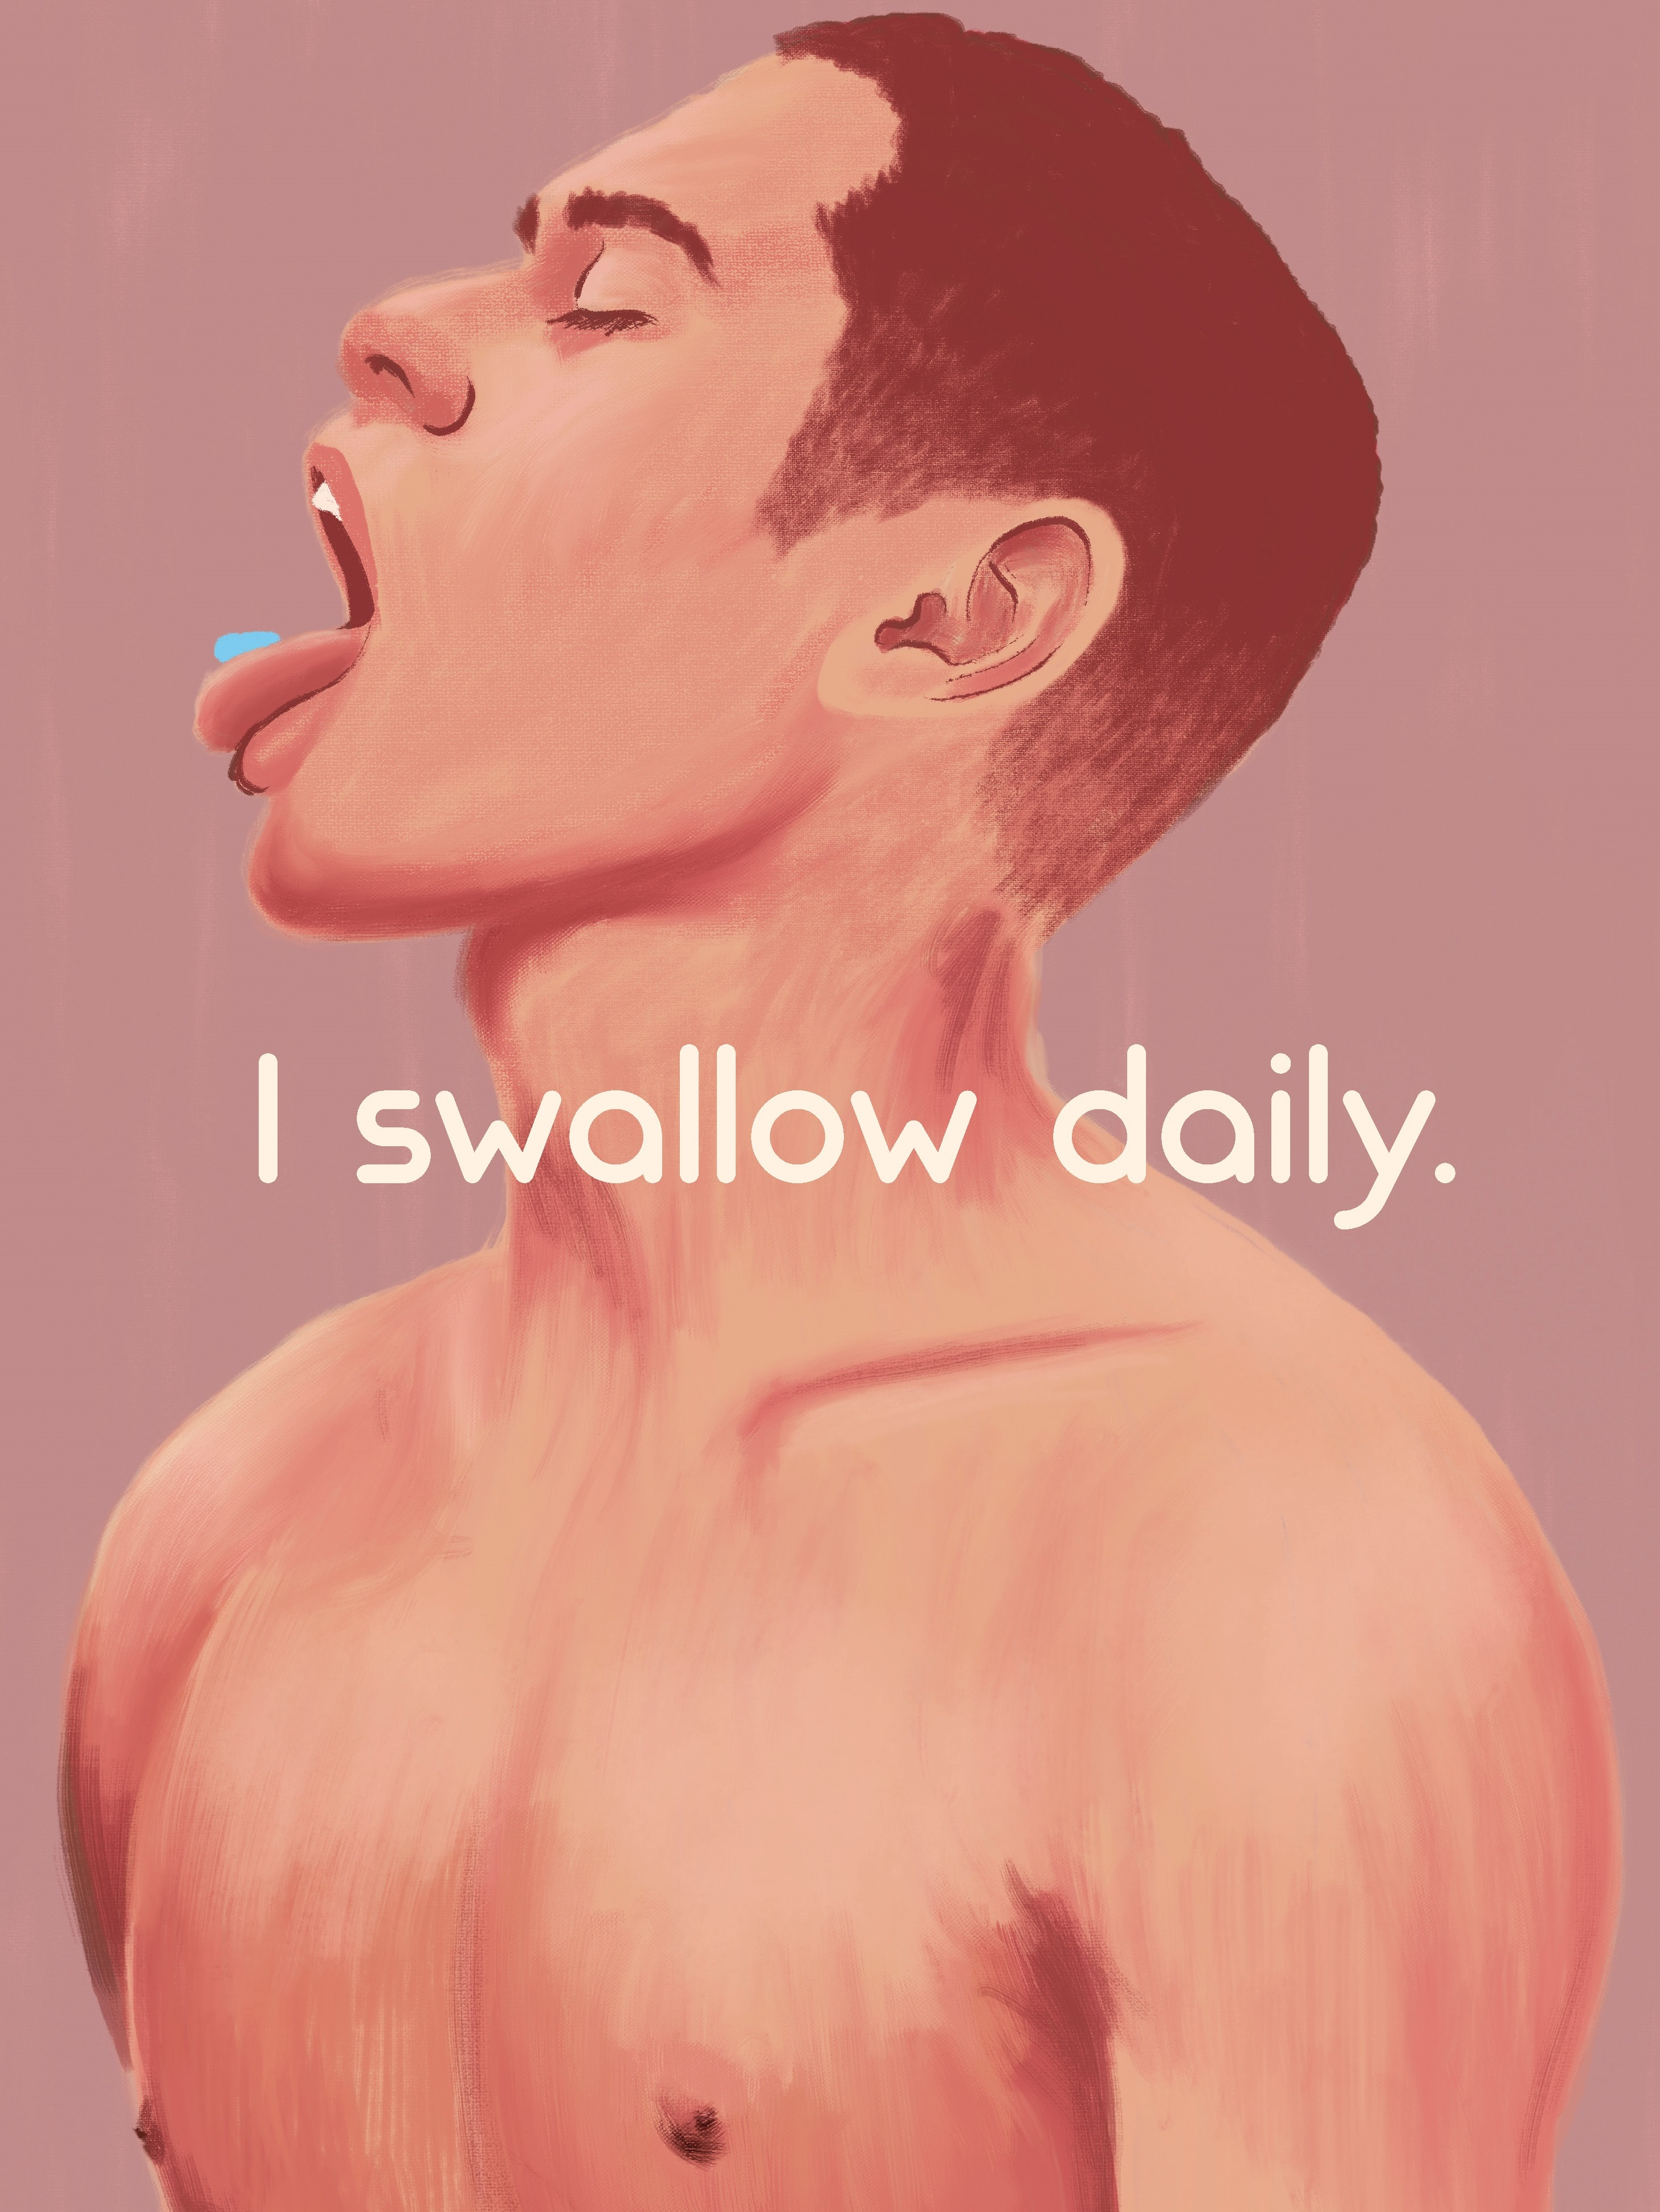 I swallow daily